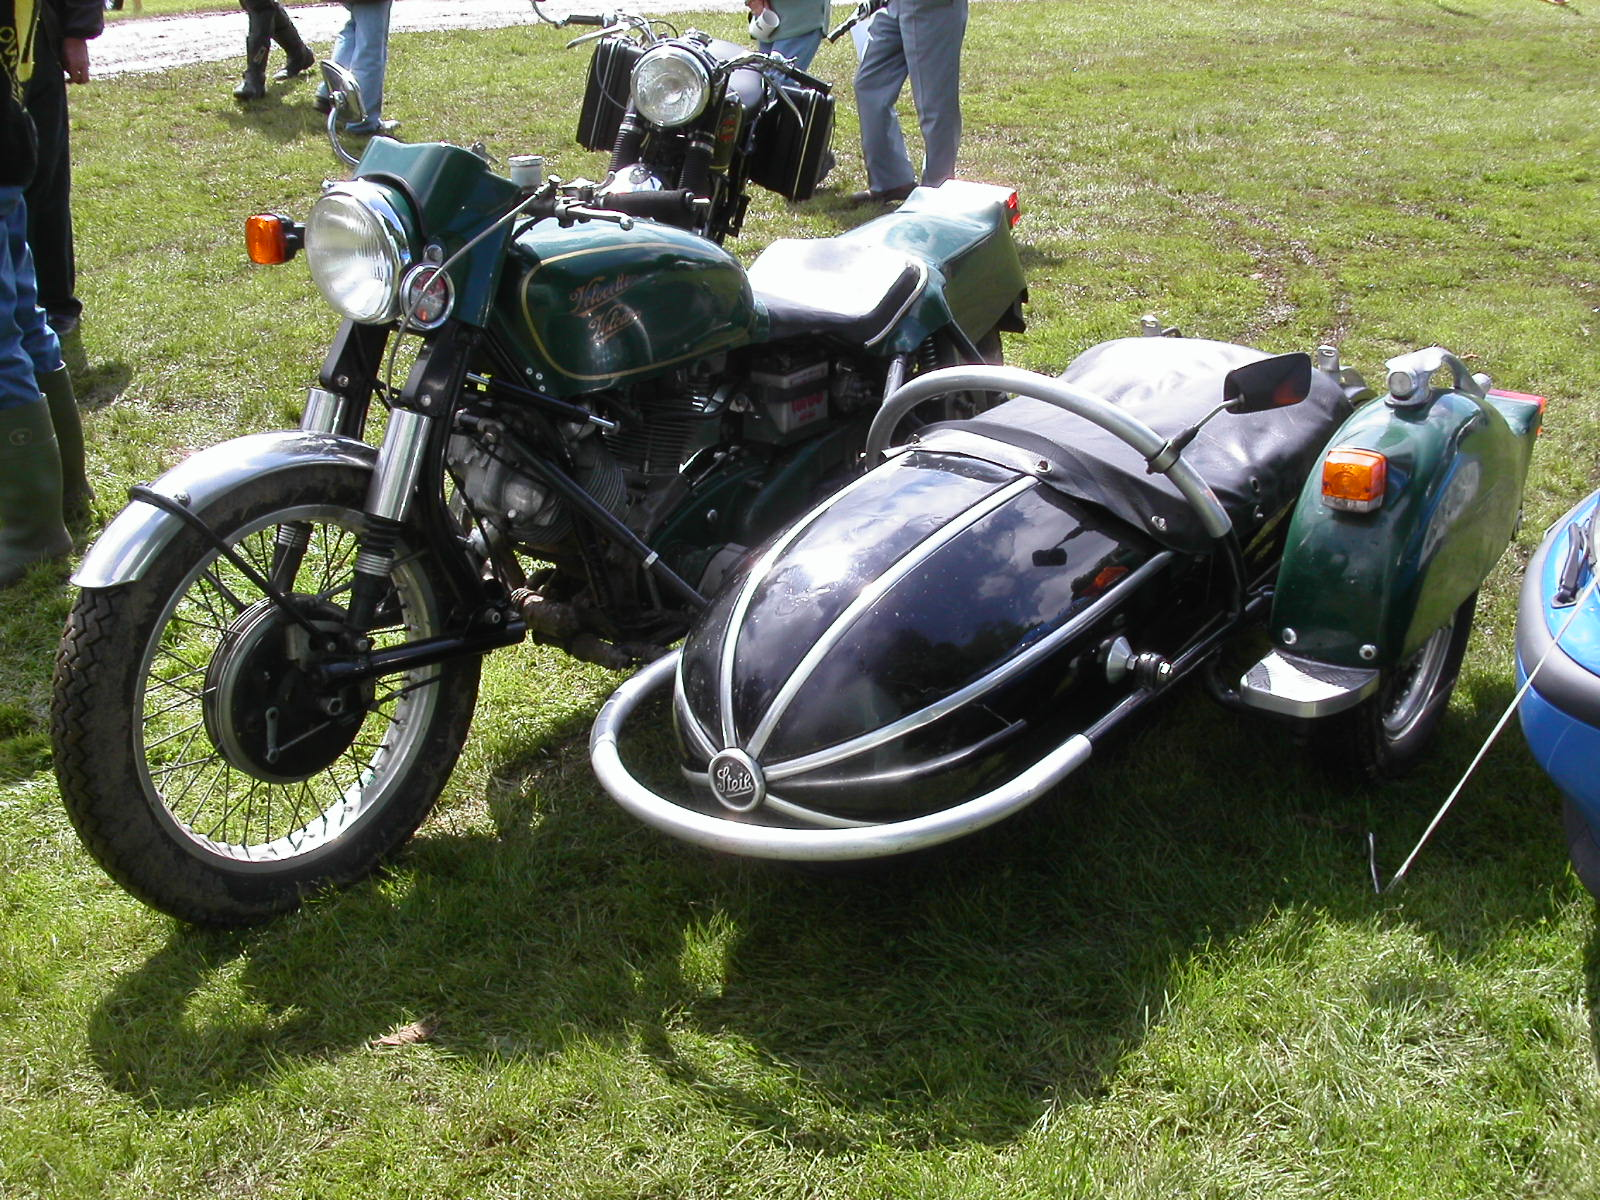 Velocette owners club dorking centre velocette vulcan v twin a velocette owners club dorking centre velocette vulcan v twin a review asfbconference2016 Choice Image